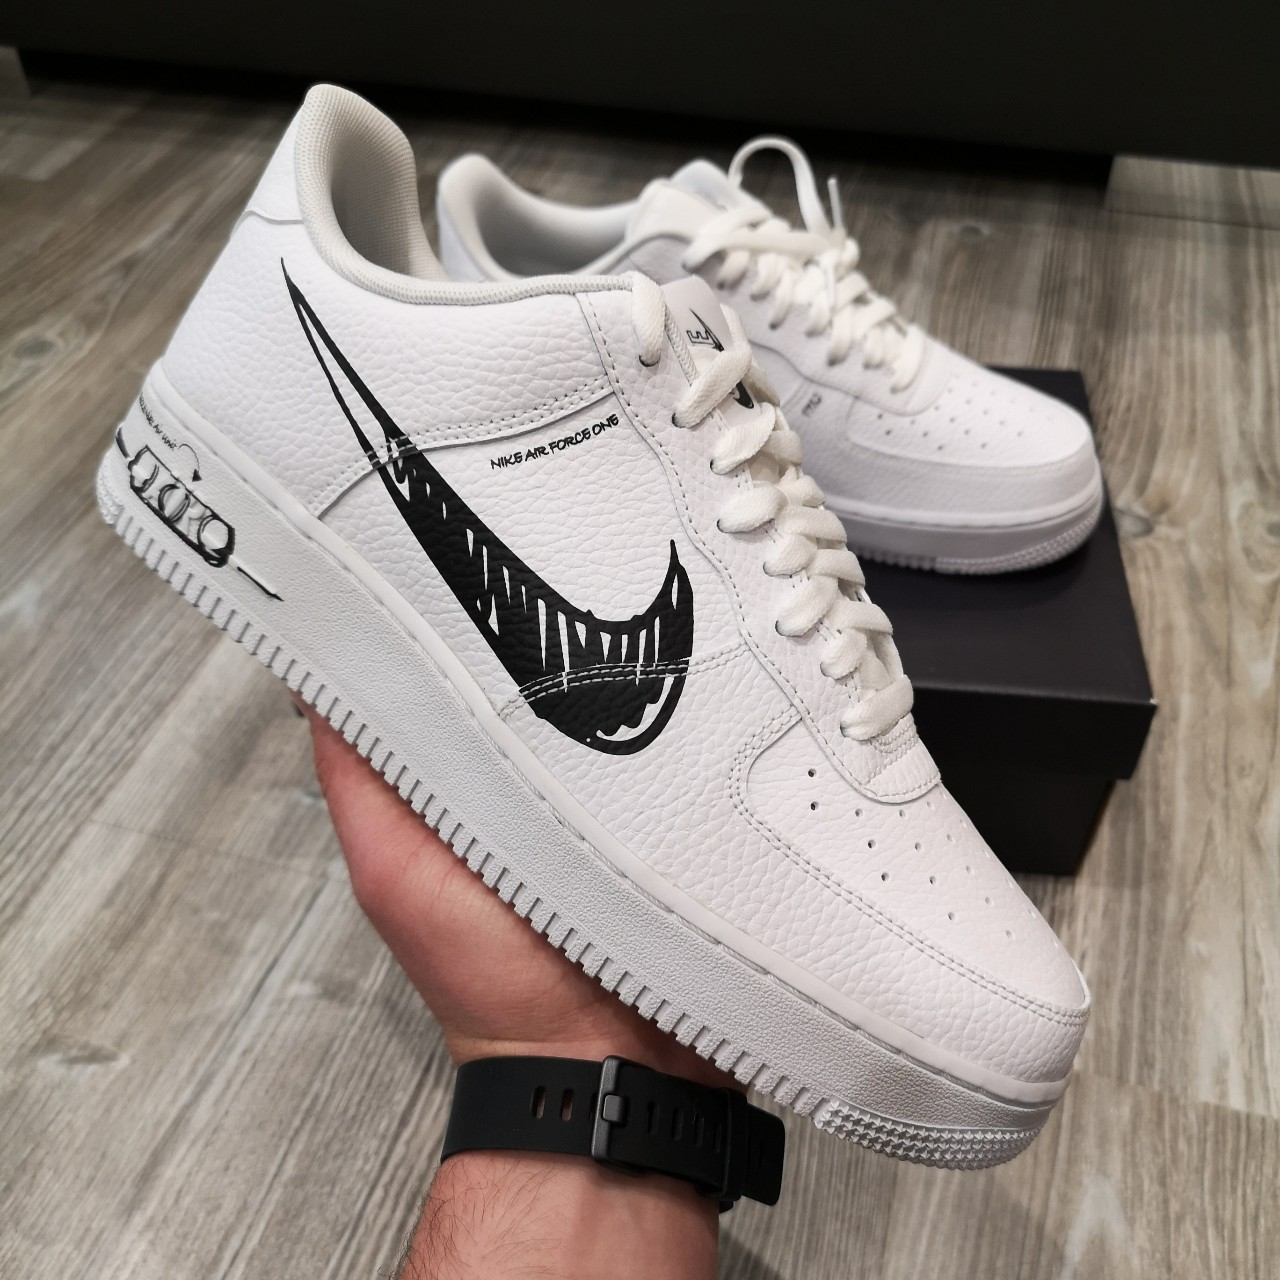 NIKE AIR FORCE 1 LOW LV8 UTILITY